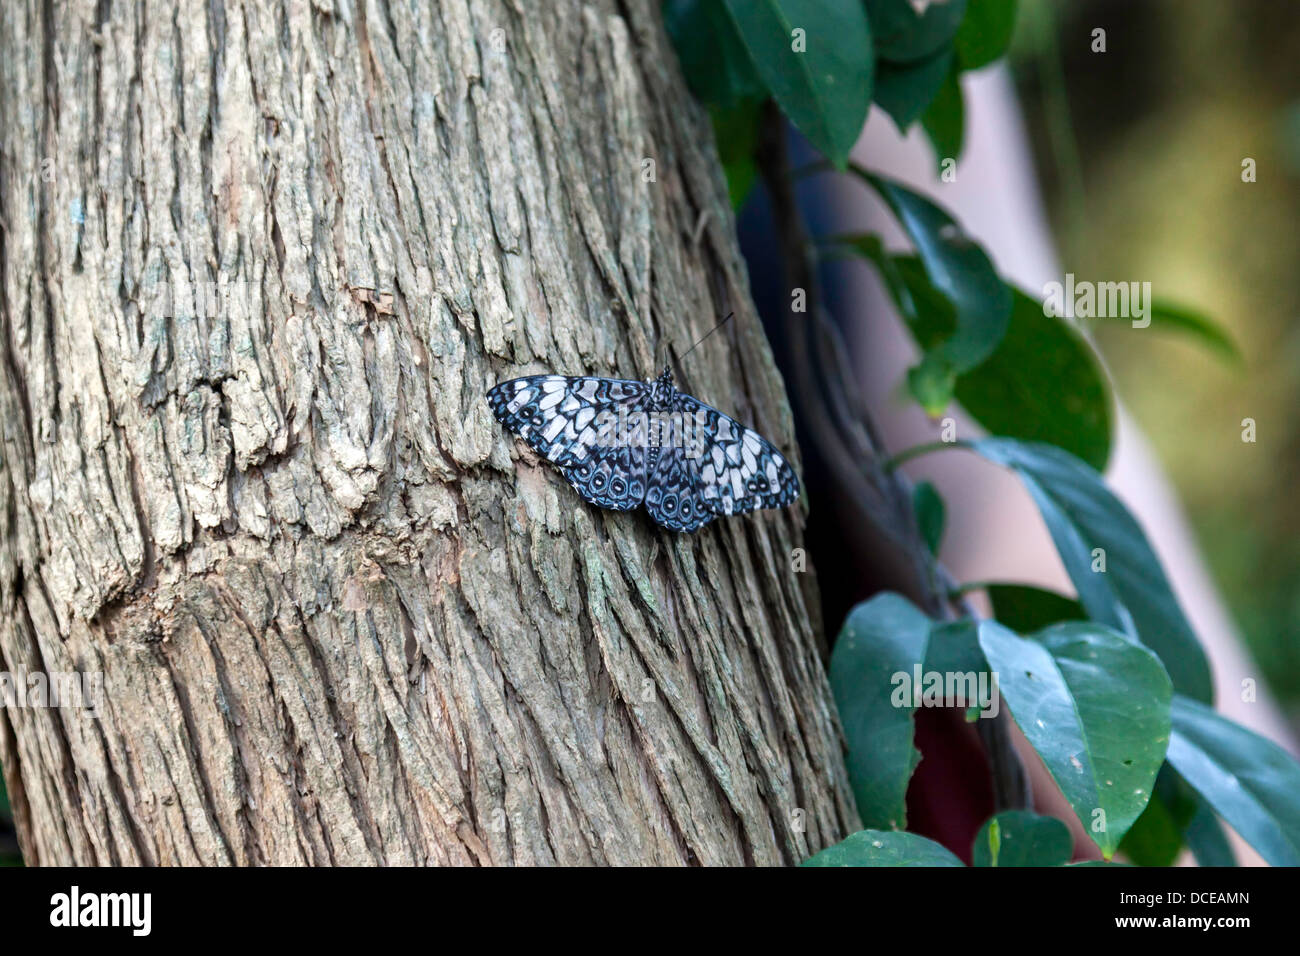 Black-patched Cracker (Hamadryas nymphalidae) butterfly on bark of tree trunk. - Stock Image